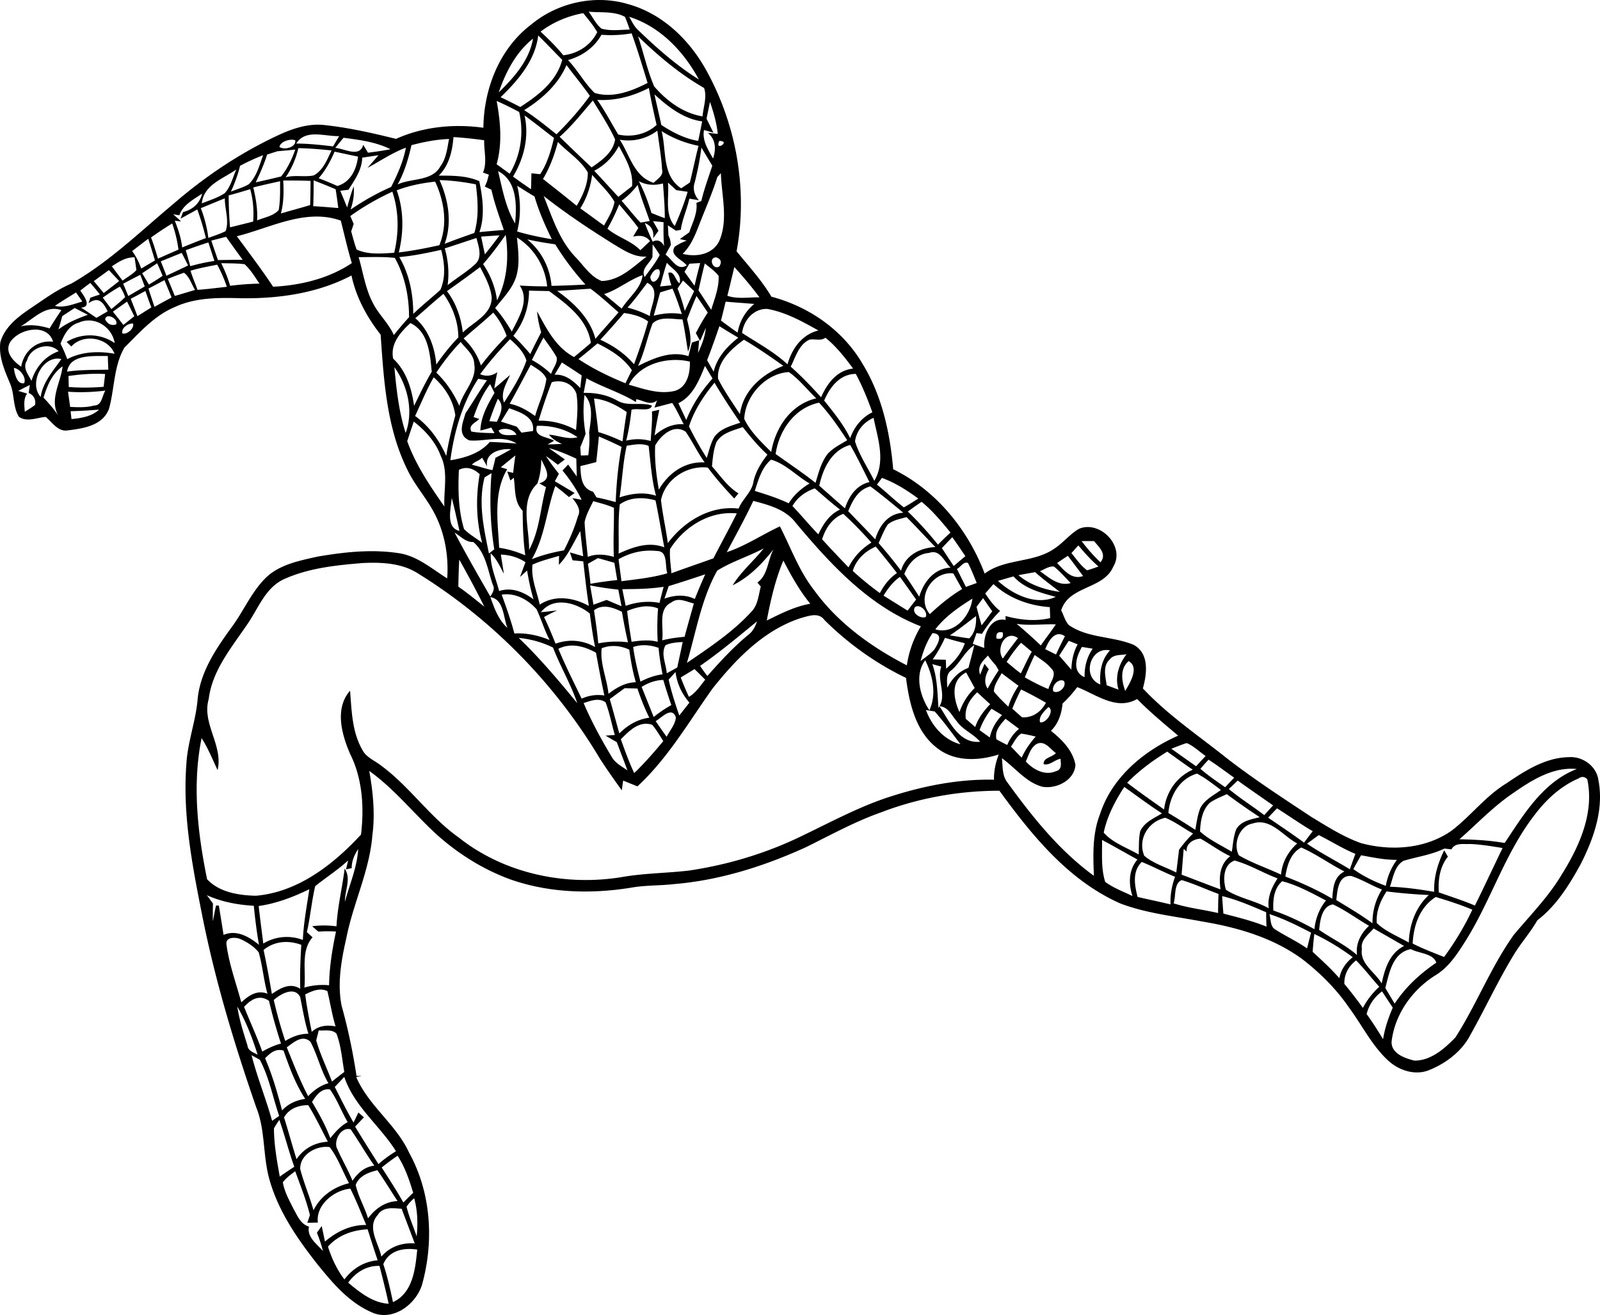 Adult Beauty Coloring Pages Of Spiderman Images cute free printable spiderman coloring pages for kids images